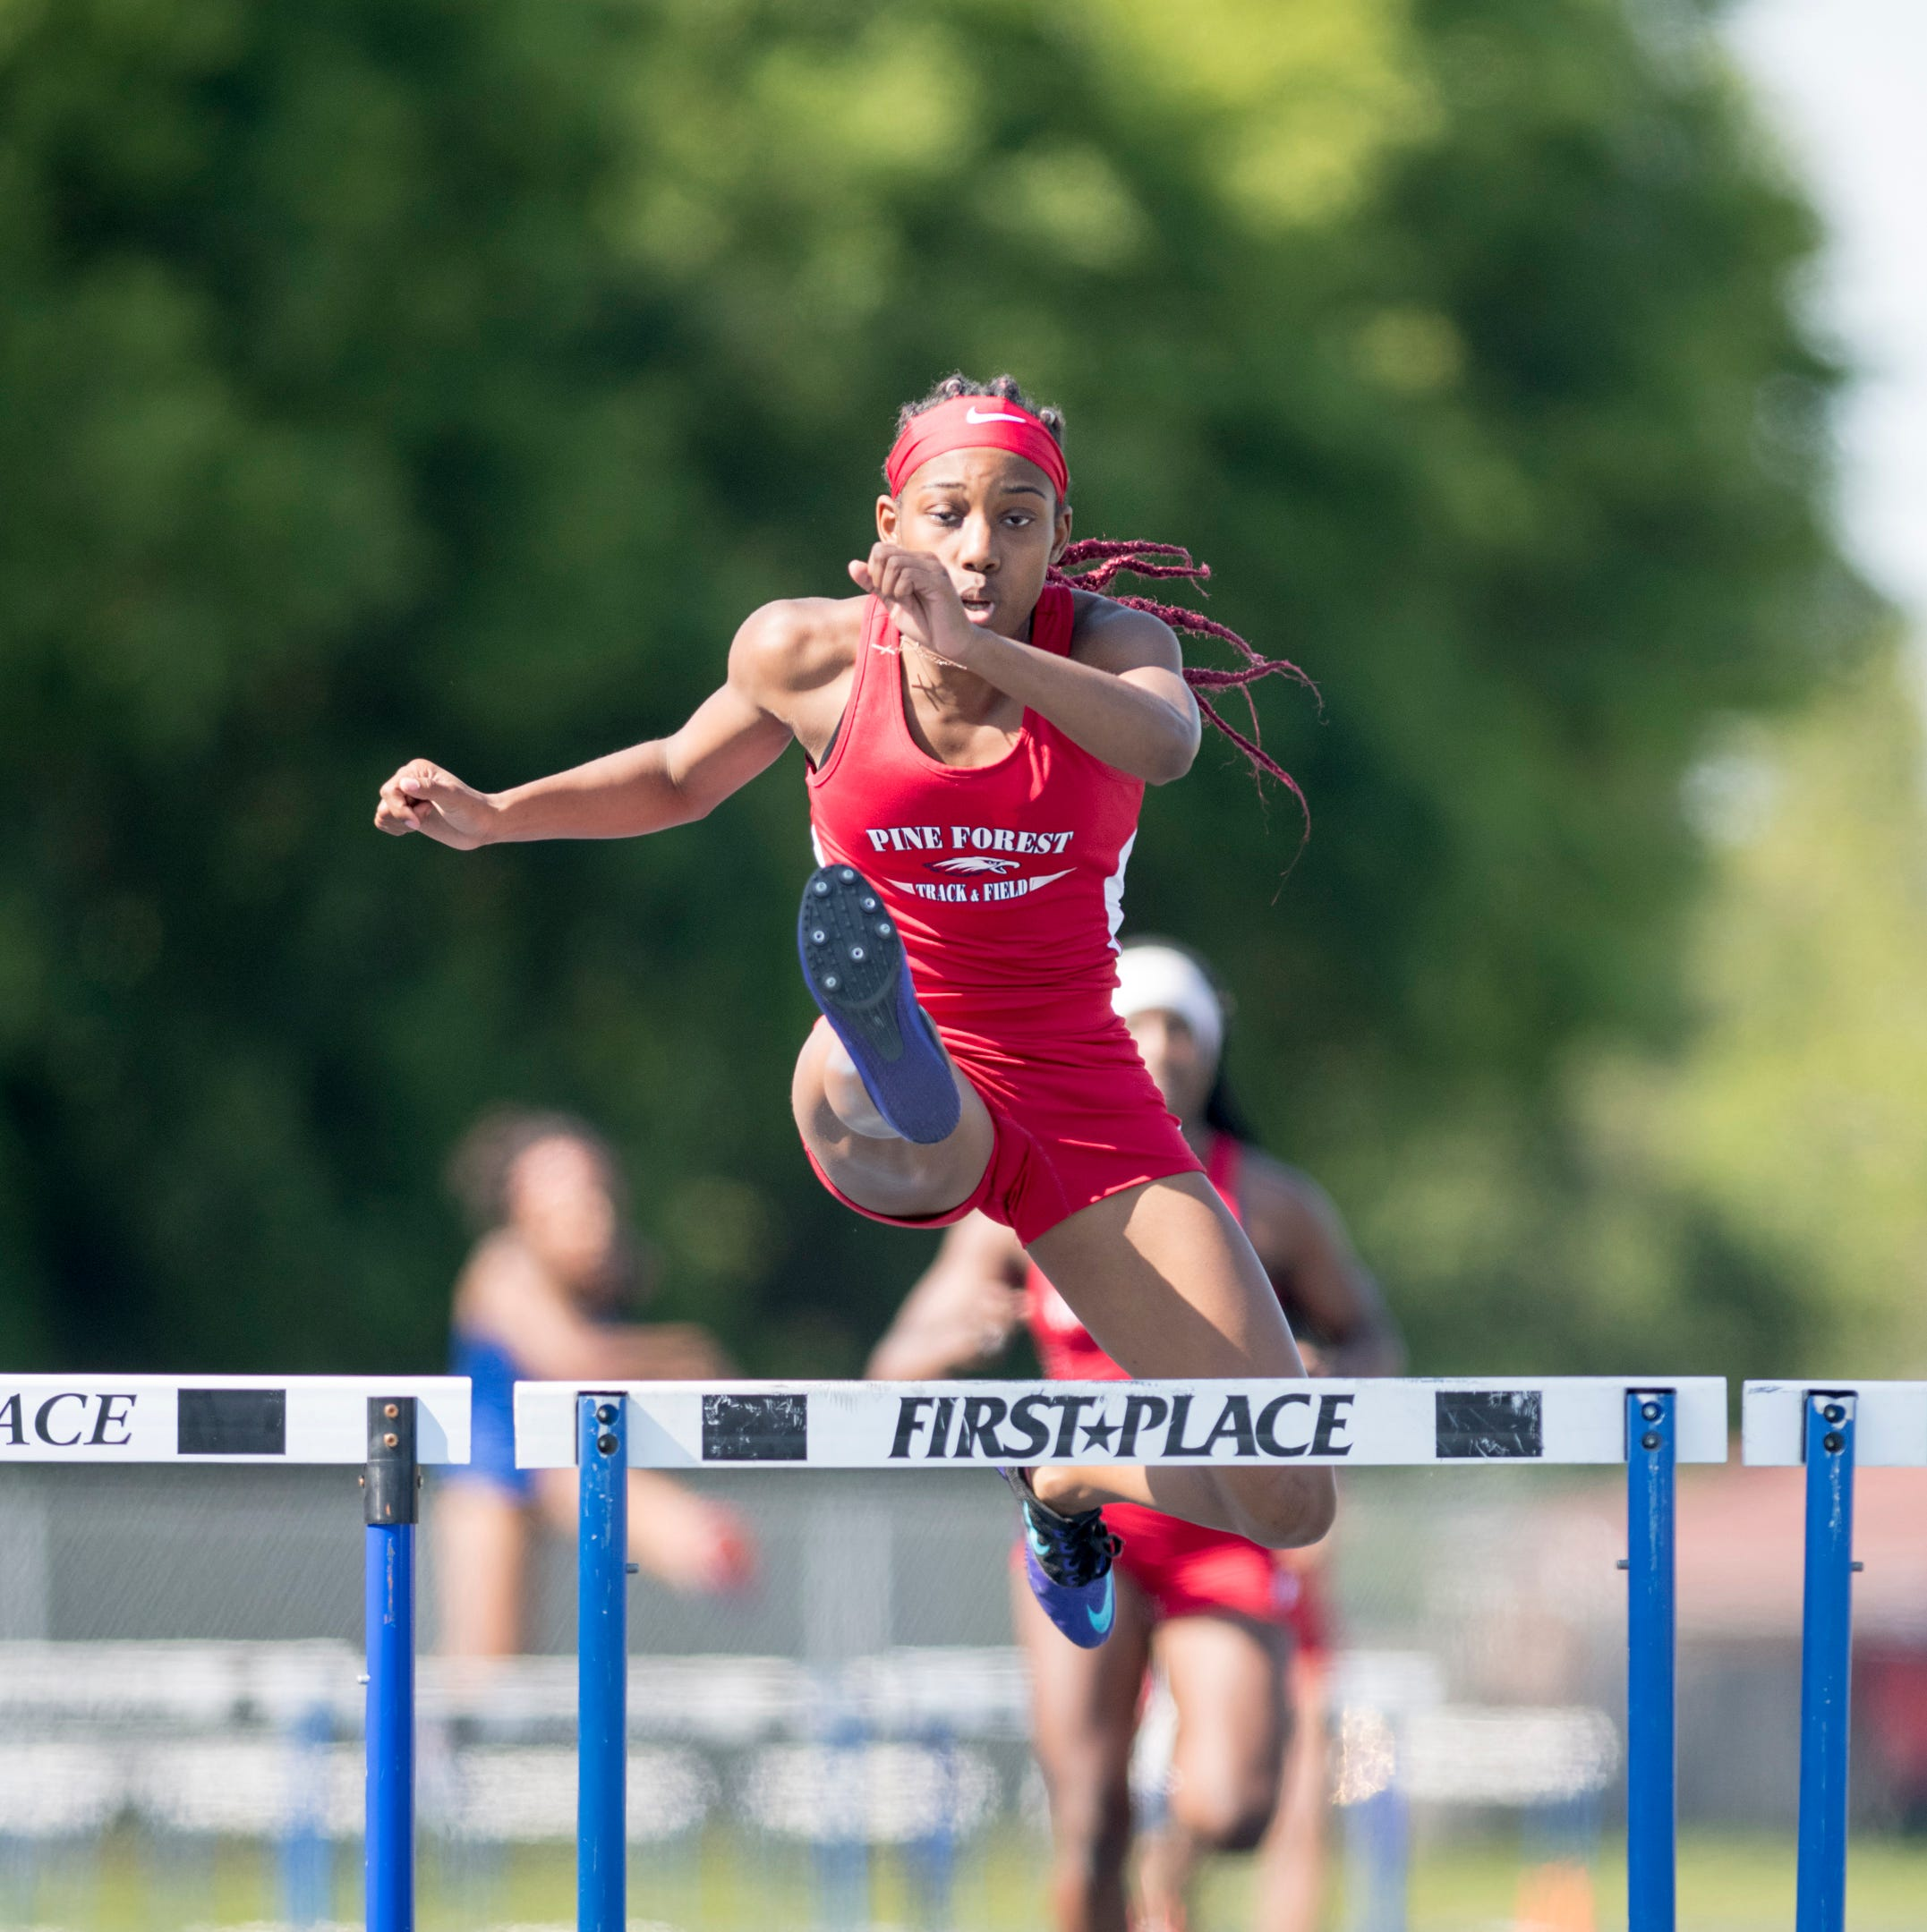 Pine Forest hurdling champion Koriyunna Arrington leads Eagles' region title defense